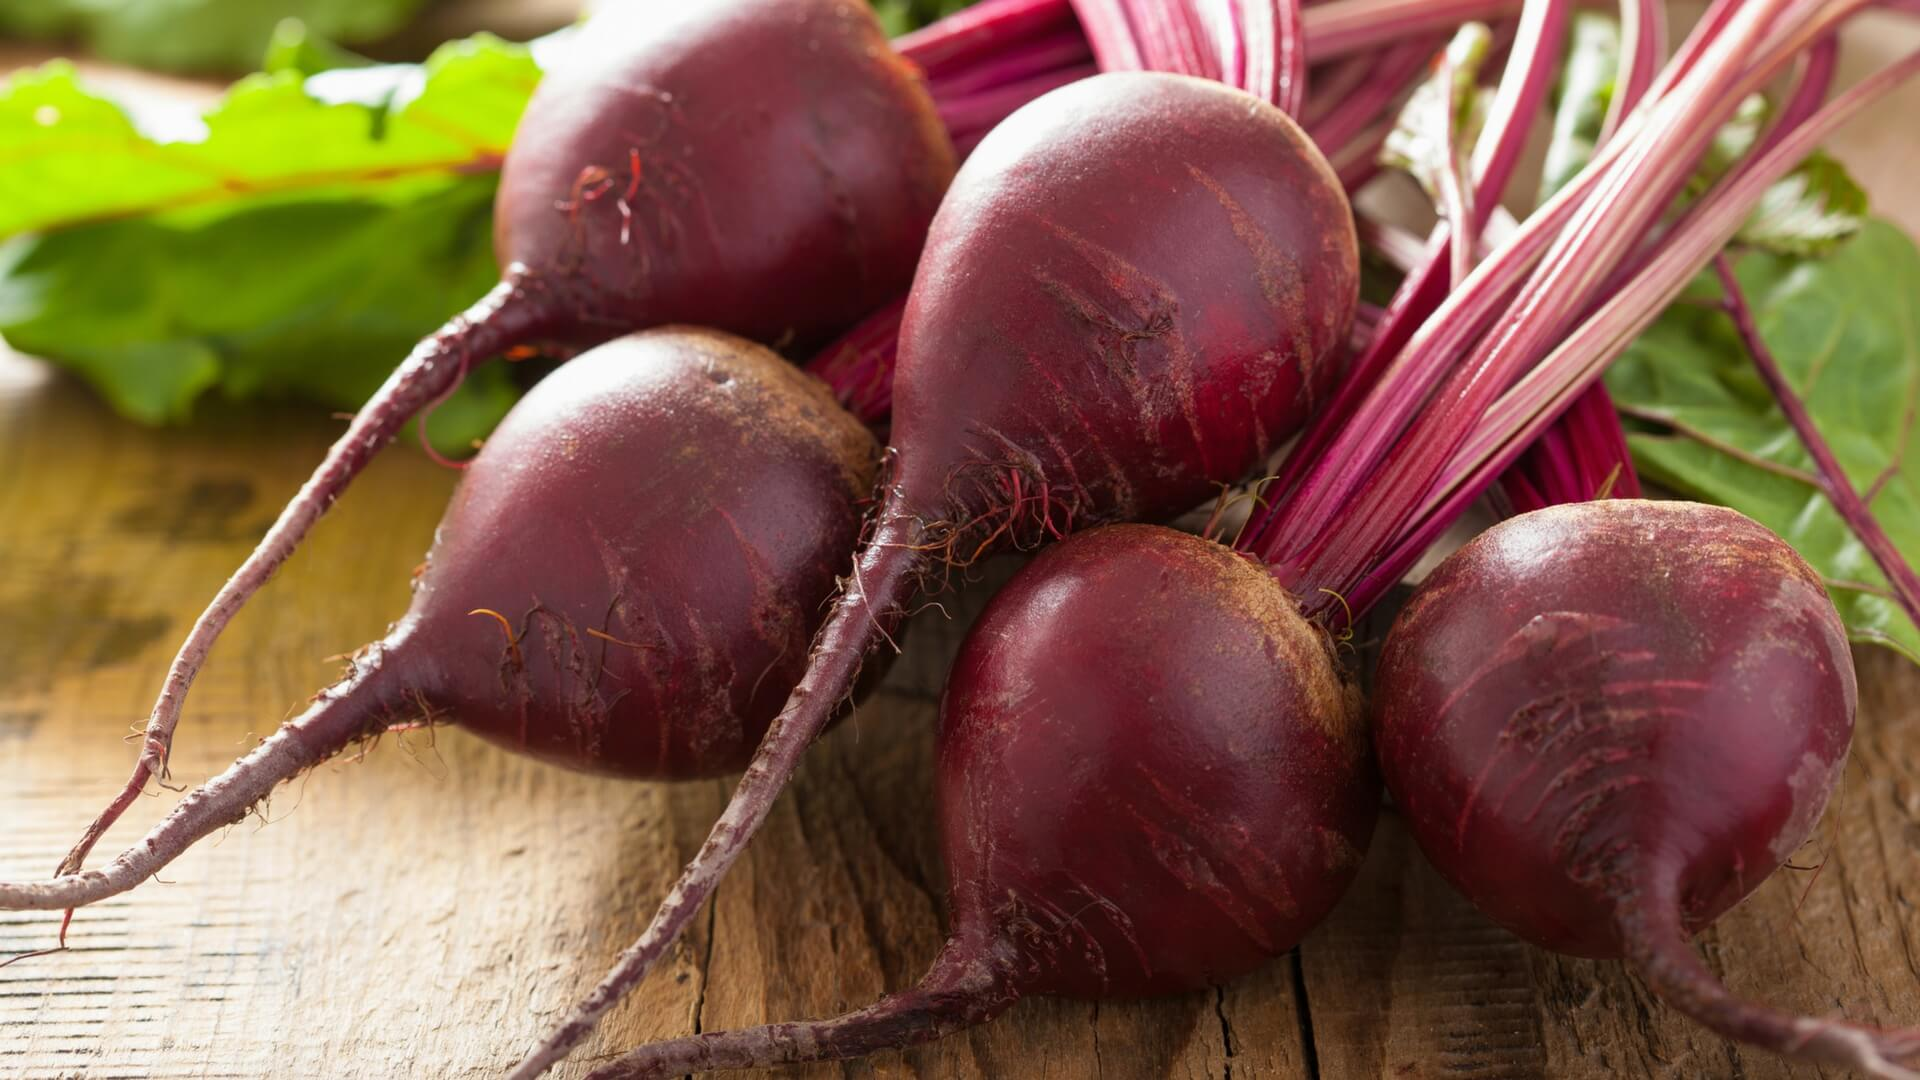 The purple vegetable